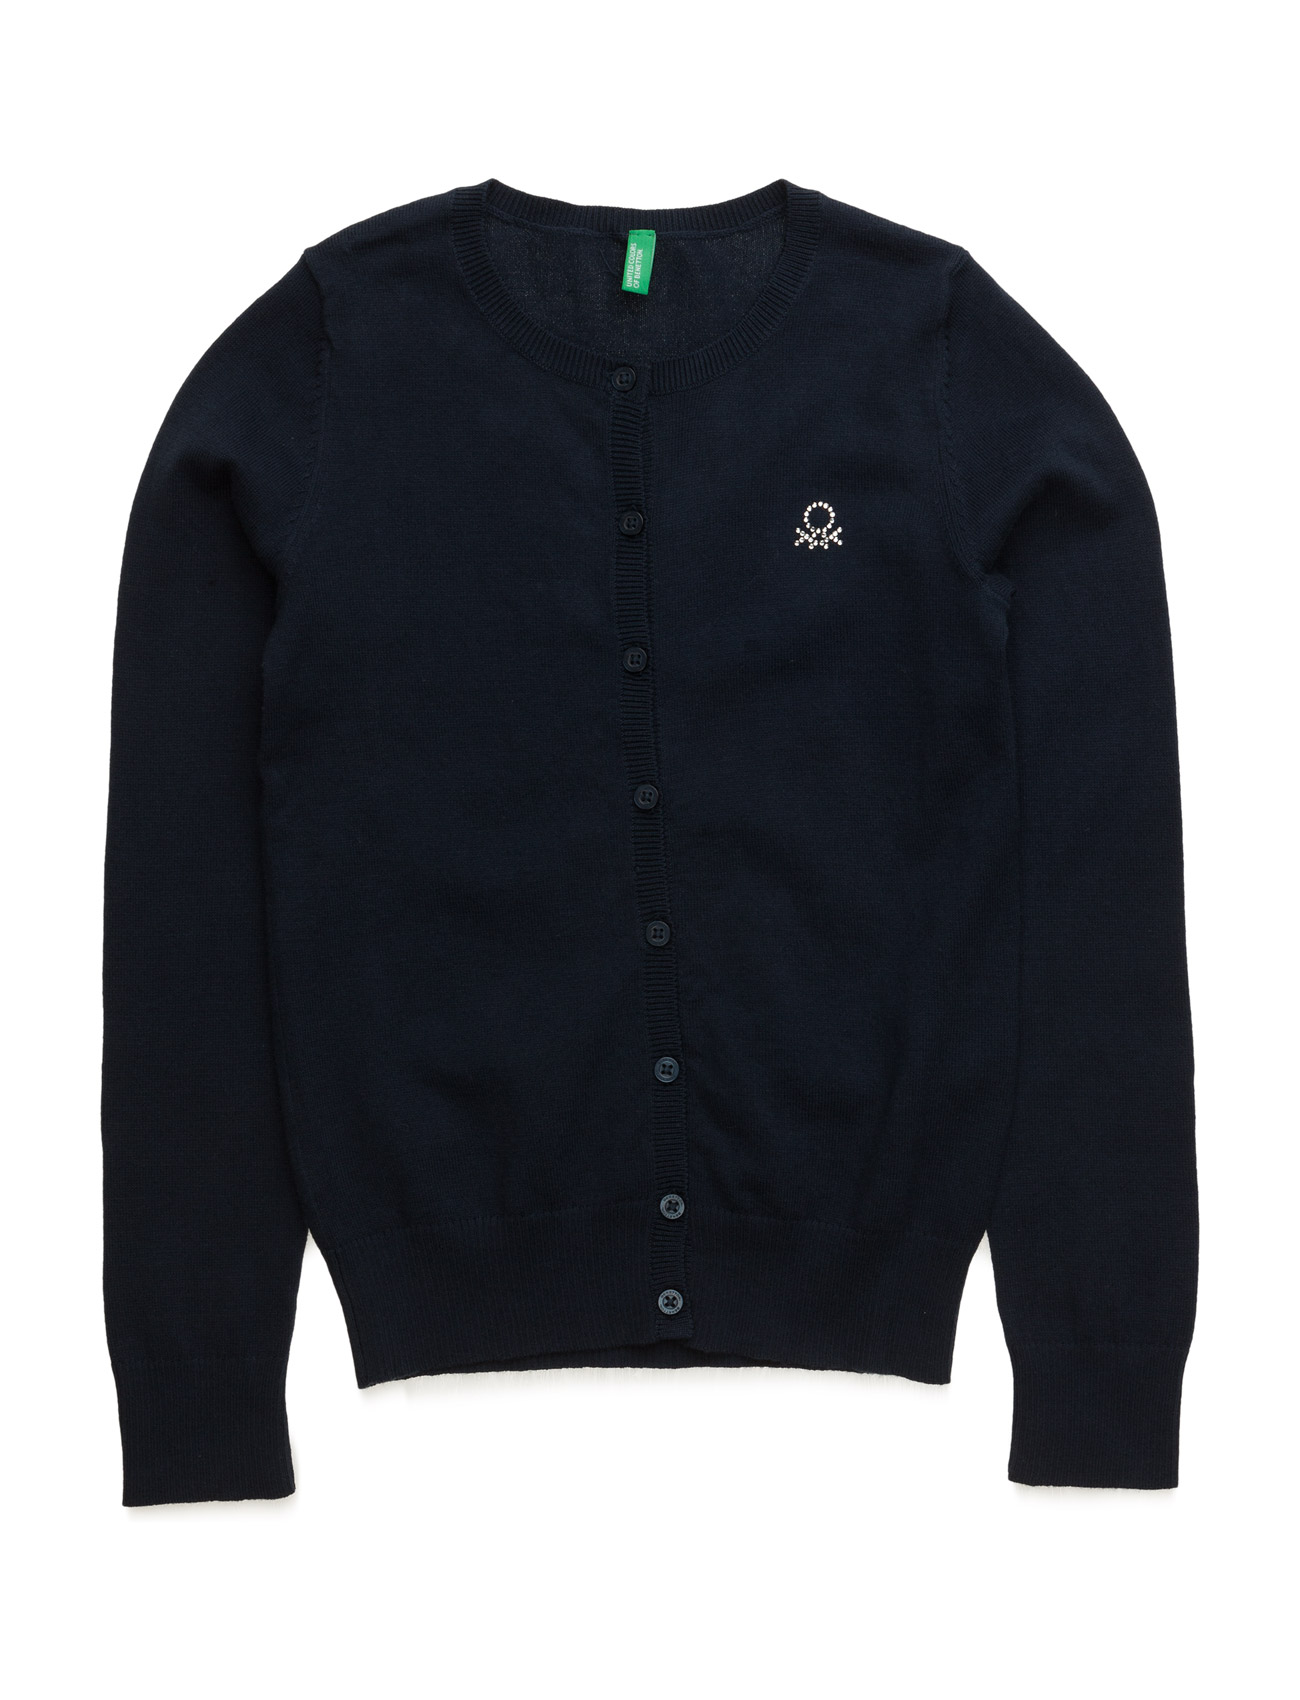 L/S Sweater - United Colors of Benetton